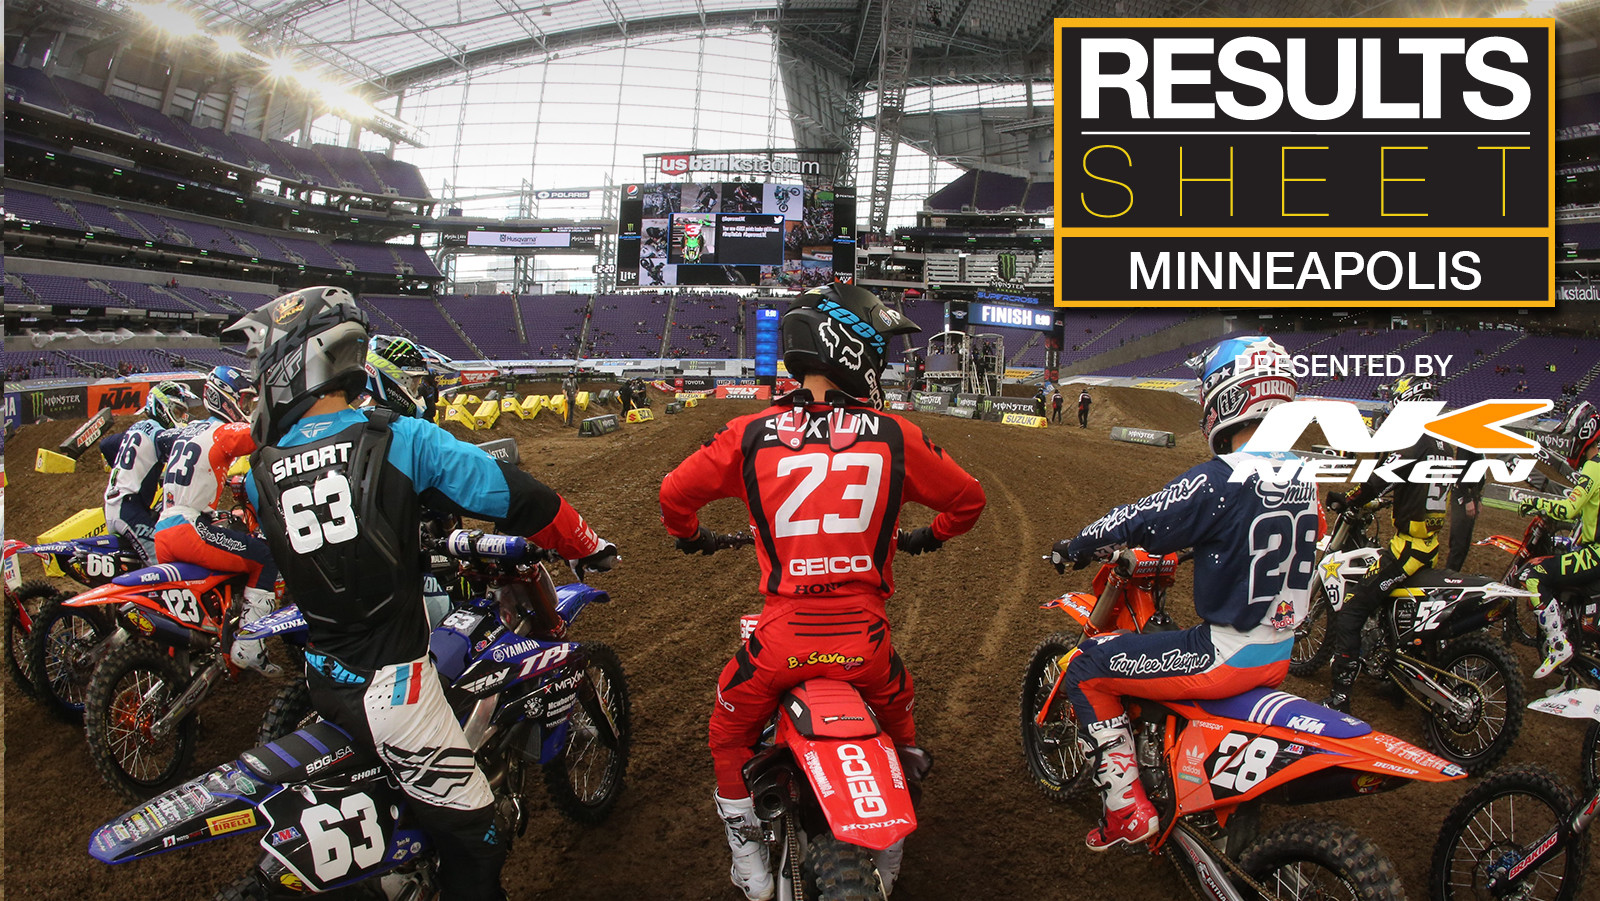 Results Sheet: 2019 Minneapolis Supercross